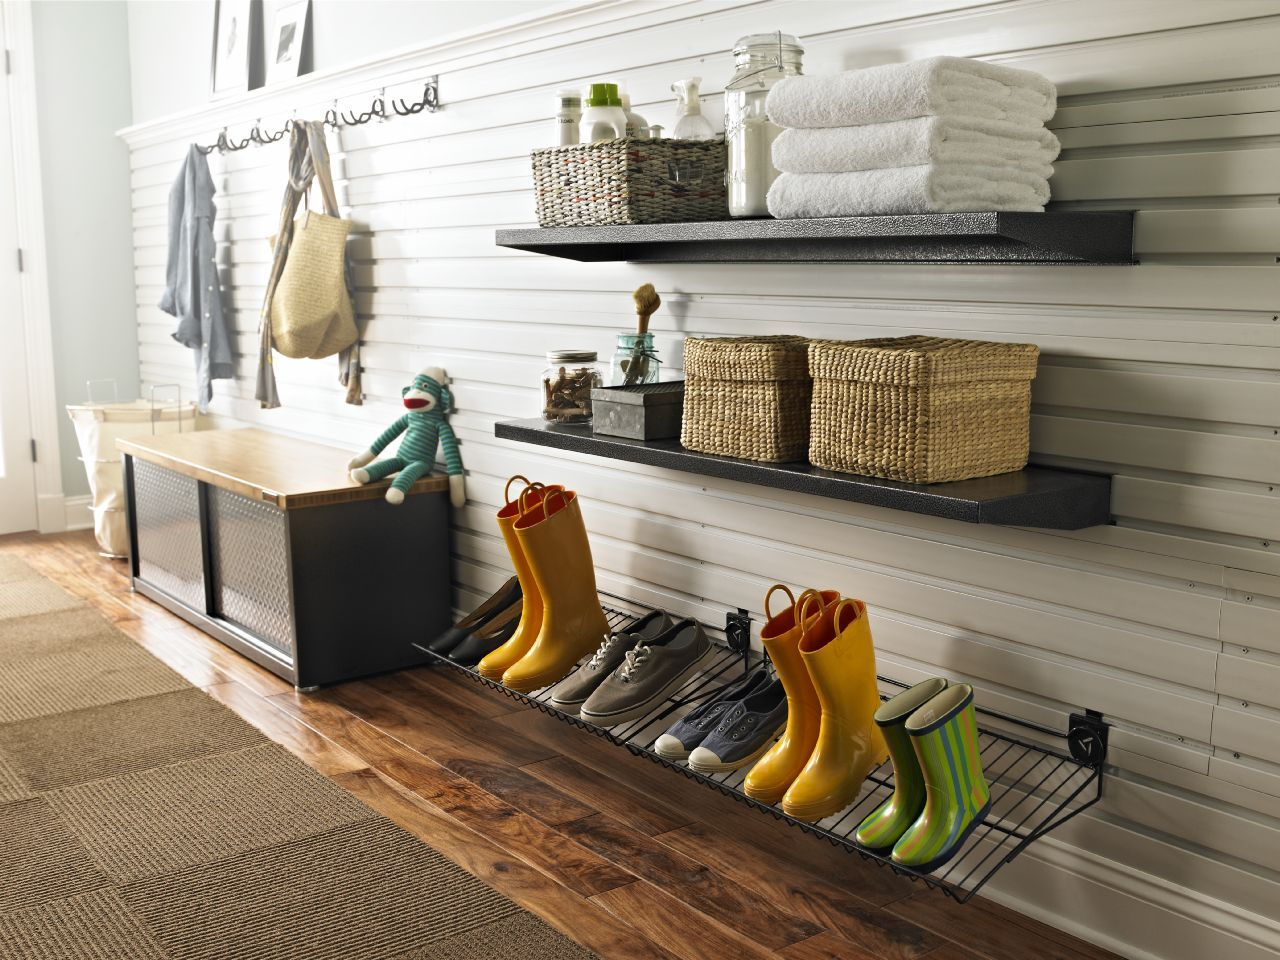 Lowes Garage Organization Ideas Part - 39: Dazzling Shoe Racks And Organizers Trend Orlando Industrial Garage And Shed  Innovative Designs With Garage Garage Design Works Home Tradie Organization  ...